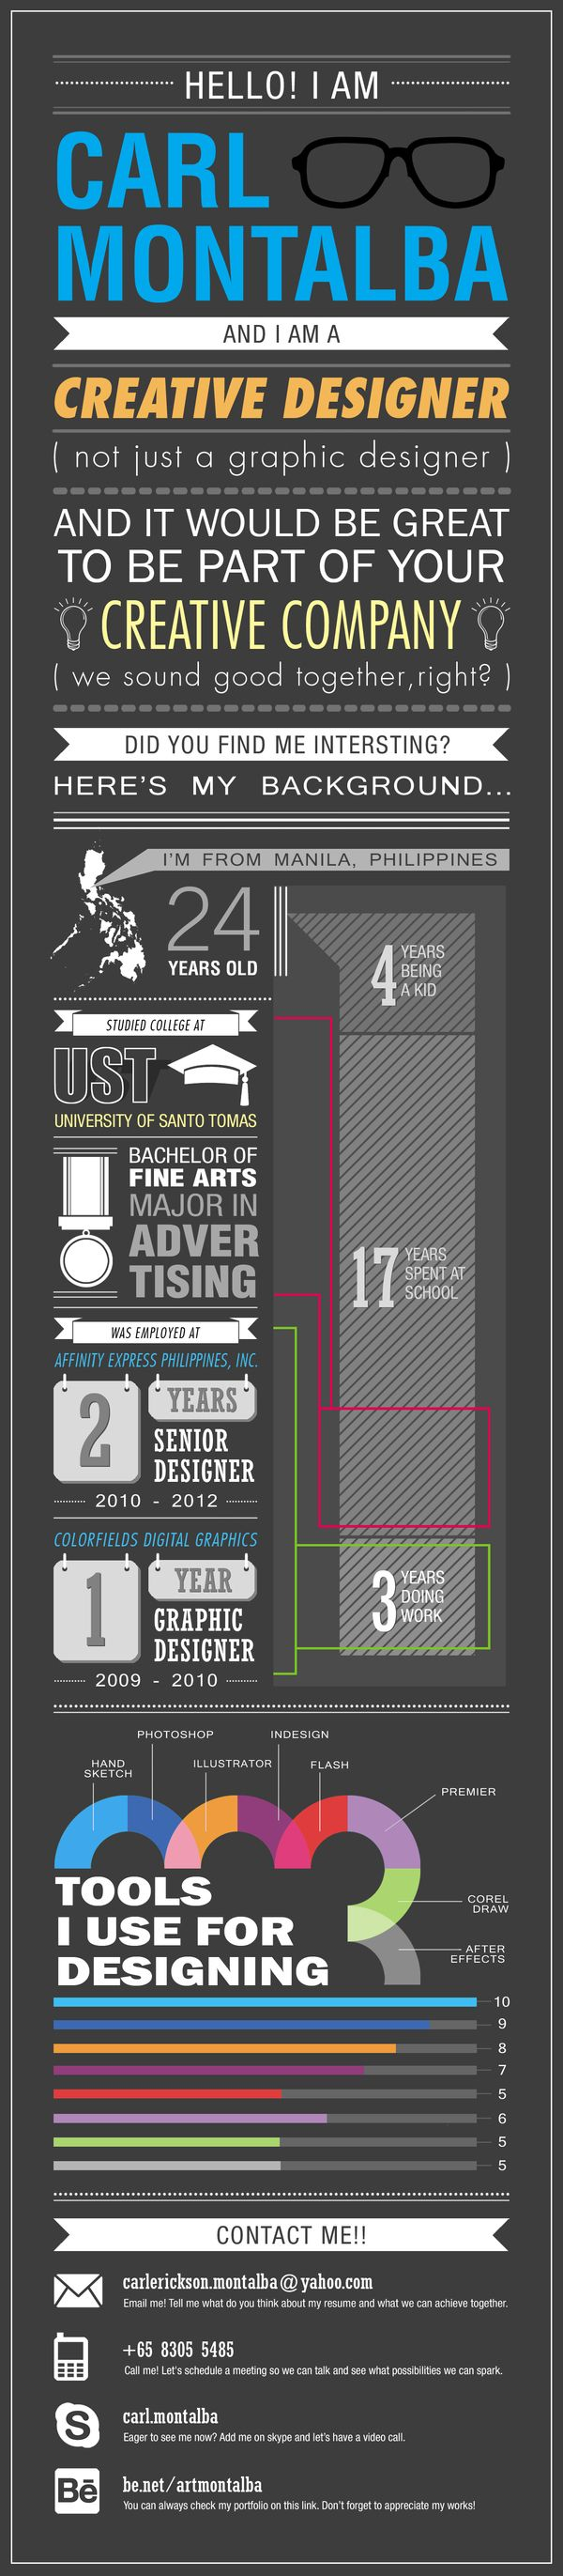 Infographic Resume by Carl Montalba via Behance